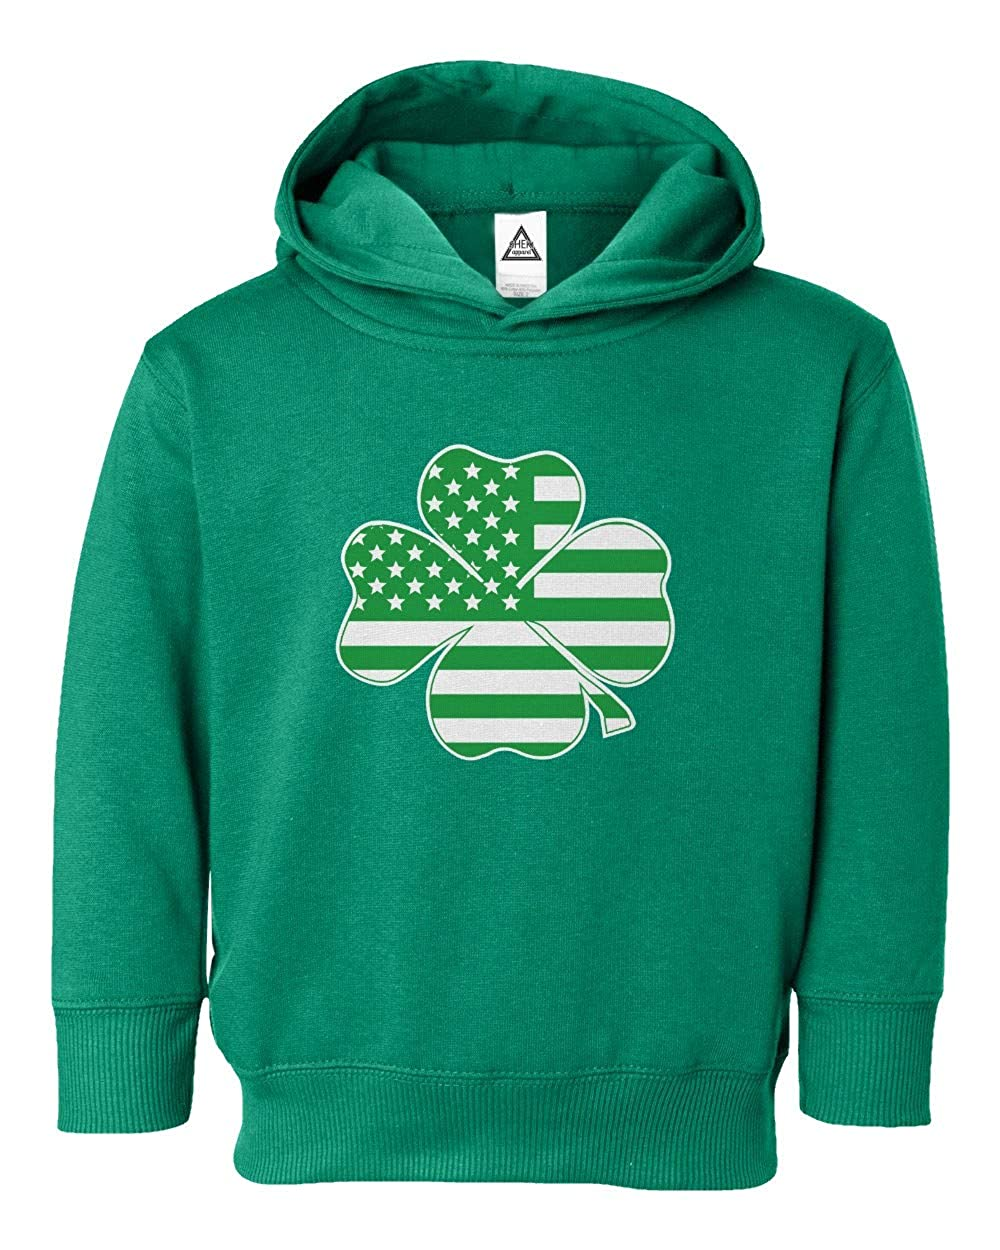 Sheki Apparel Irish American Flag Vintage Shamrock St Patricks Day Toddler Hooded Sweatshirt